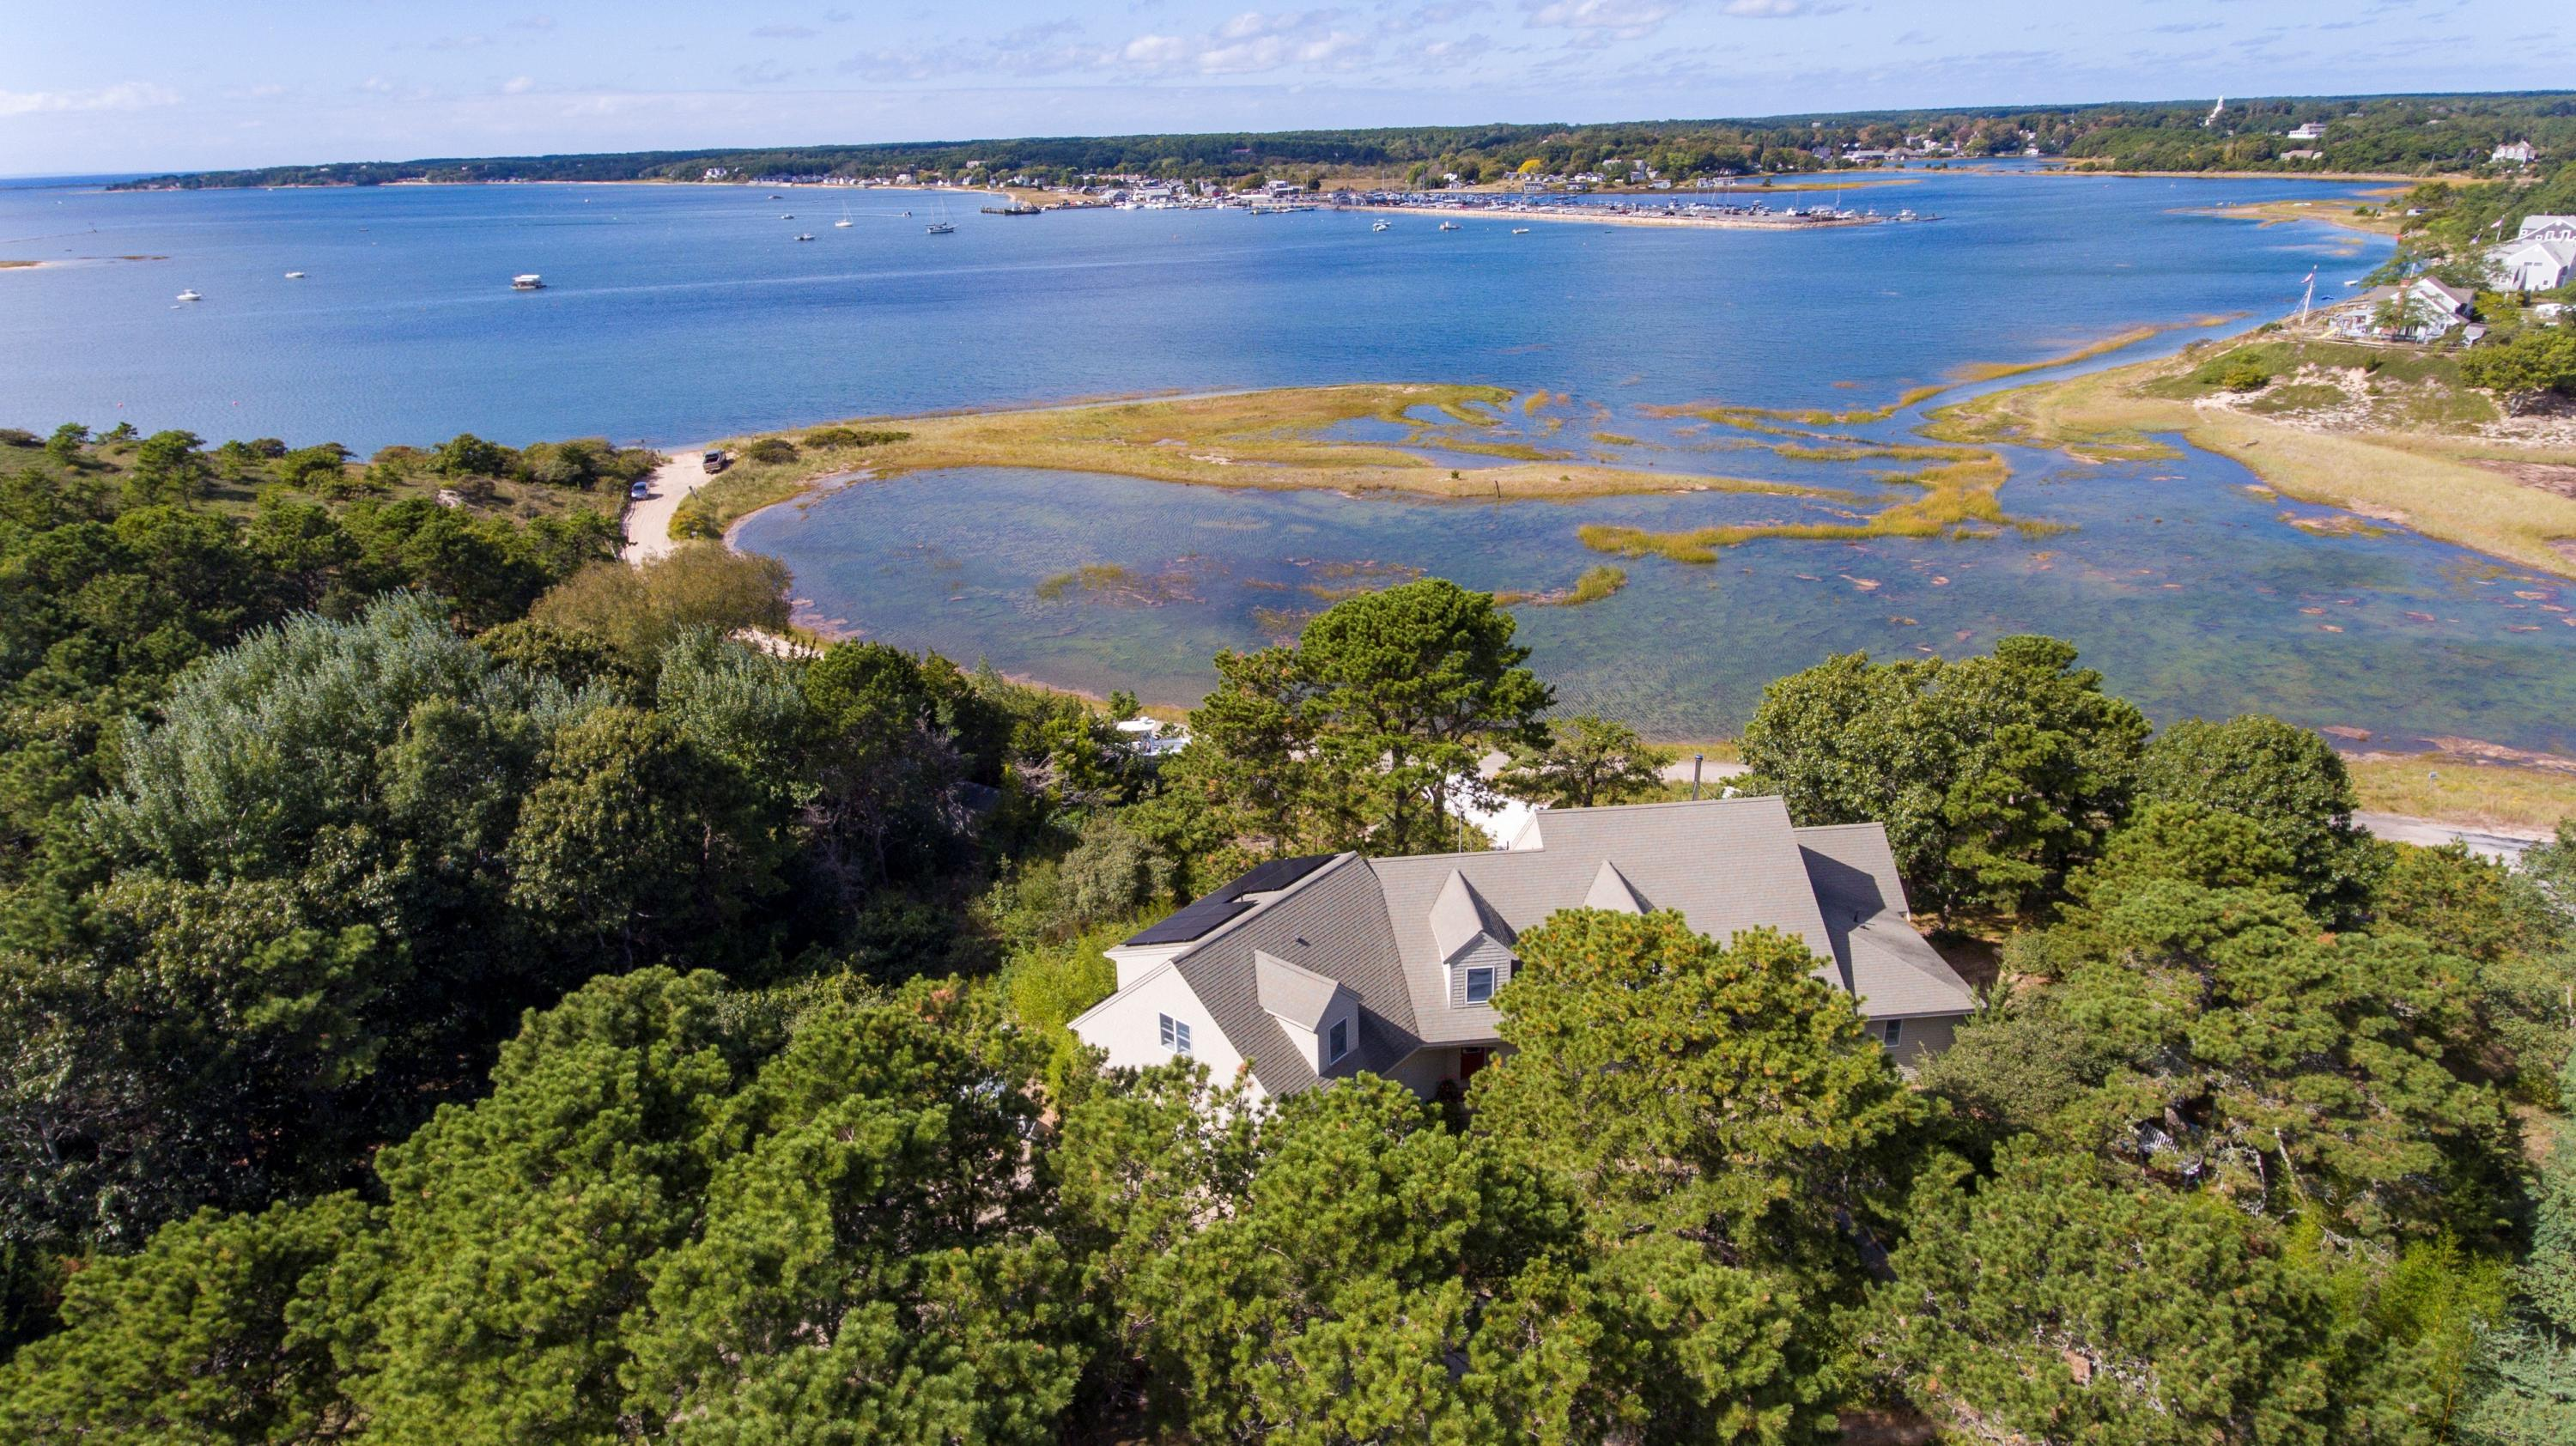 20 Partridge Way, Wellfleet MA, 02667 details